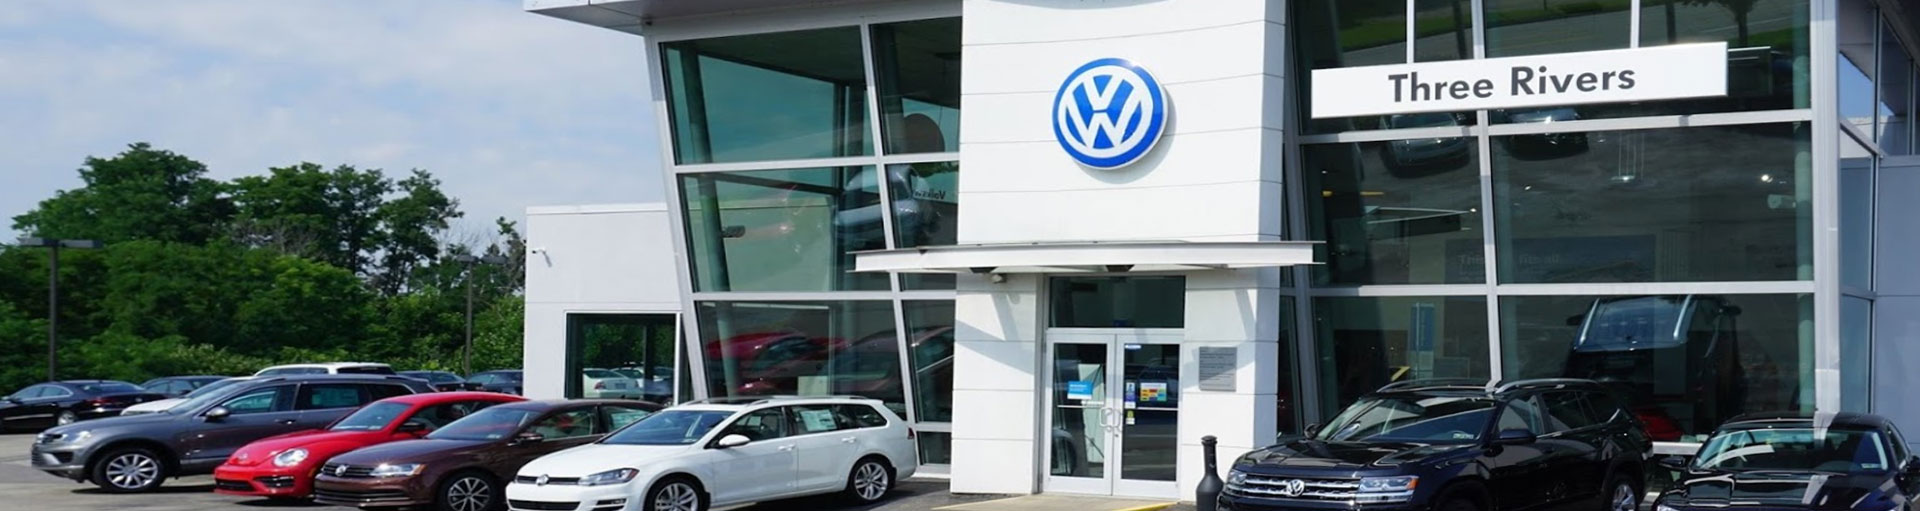 Three River VW Service Specials